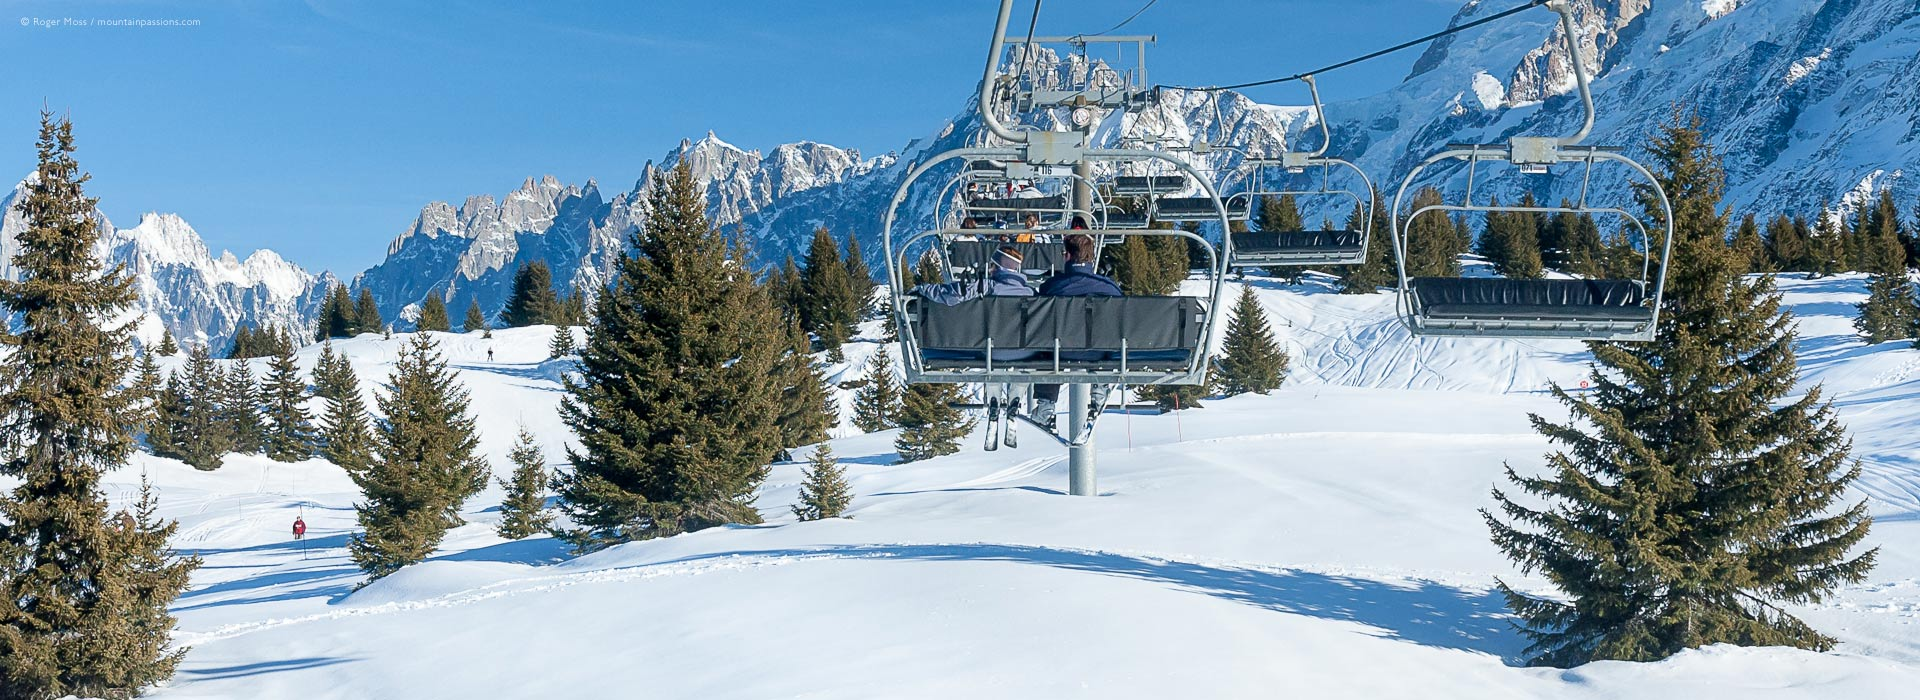 View from chair-lift of ski terrain with trees and mountains